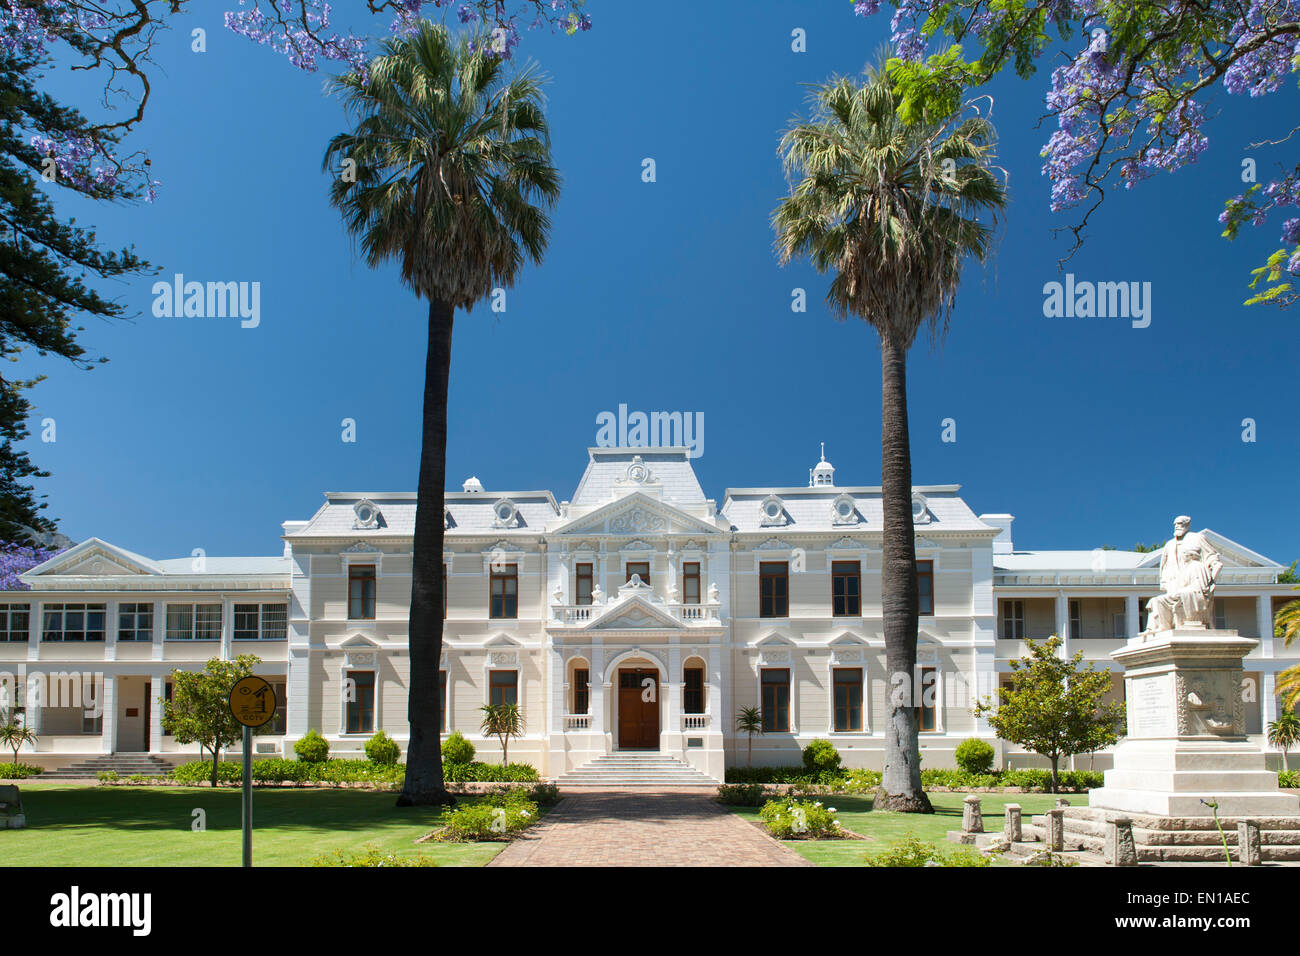 Theological Seminary at 171 Dorp Street in Stellenbosch, Western Cape, South Africa. - Stock Image